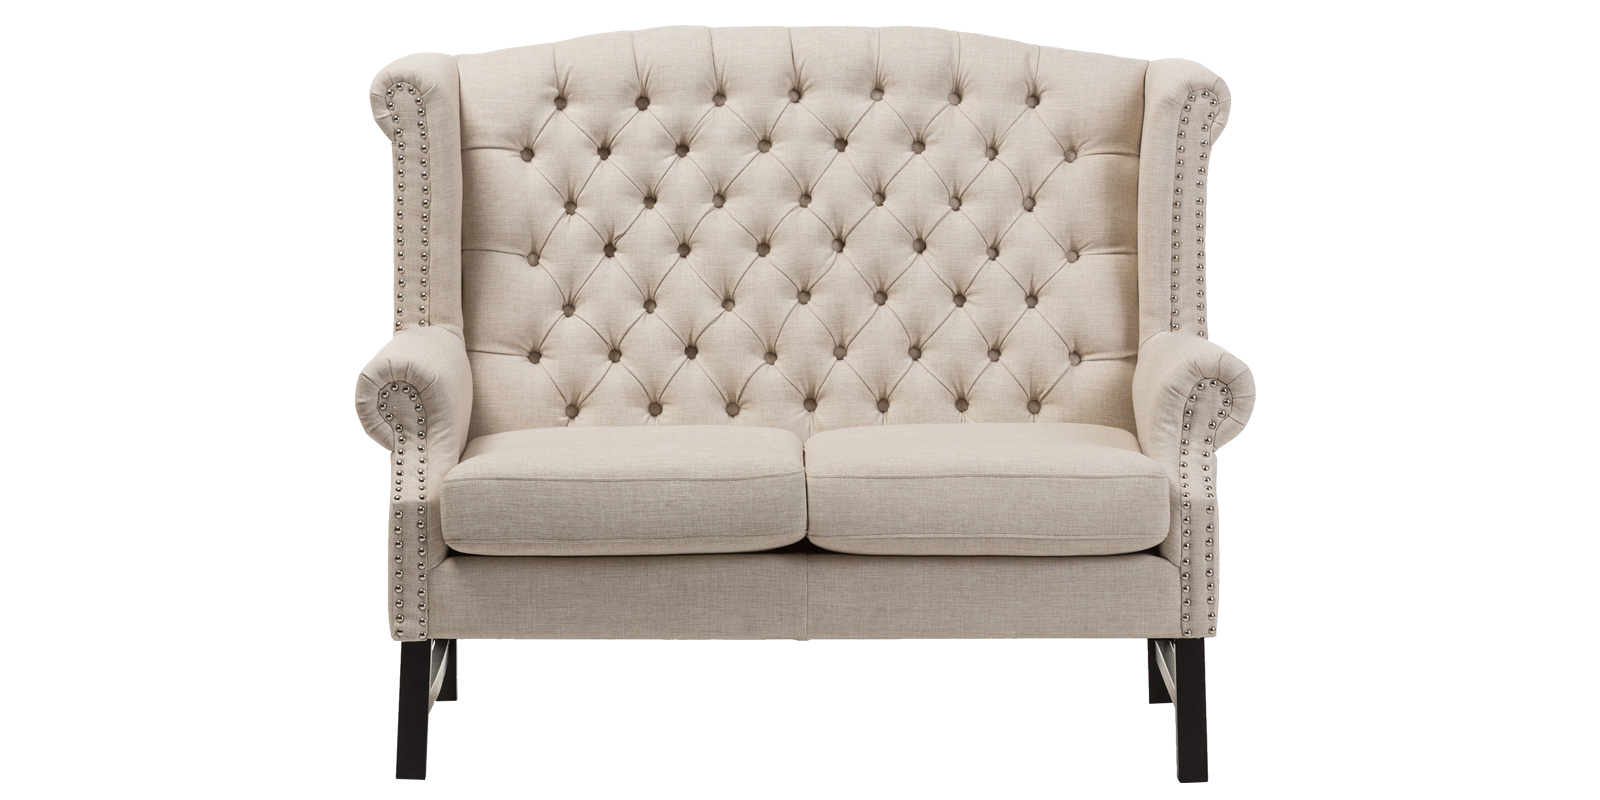 Abott Two Seater Love Seat In Beige Colour Dreamzz